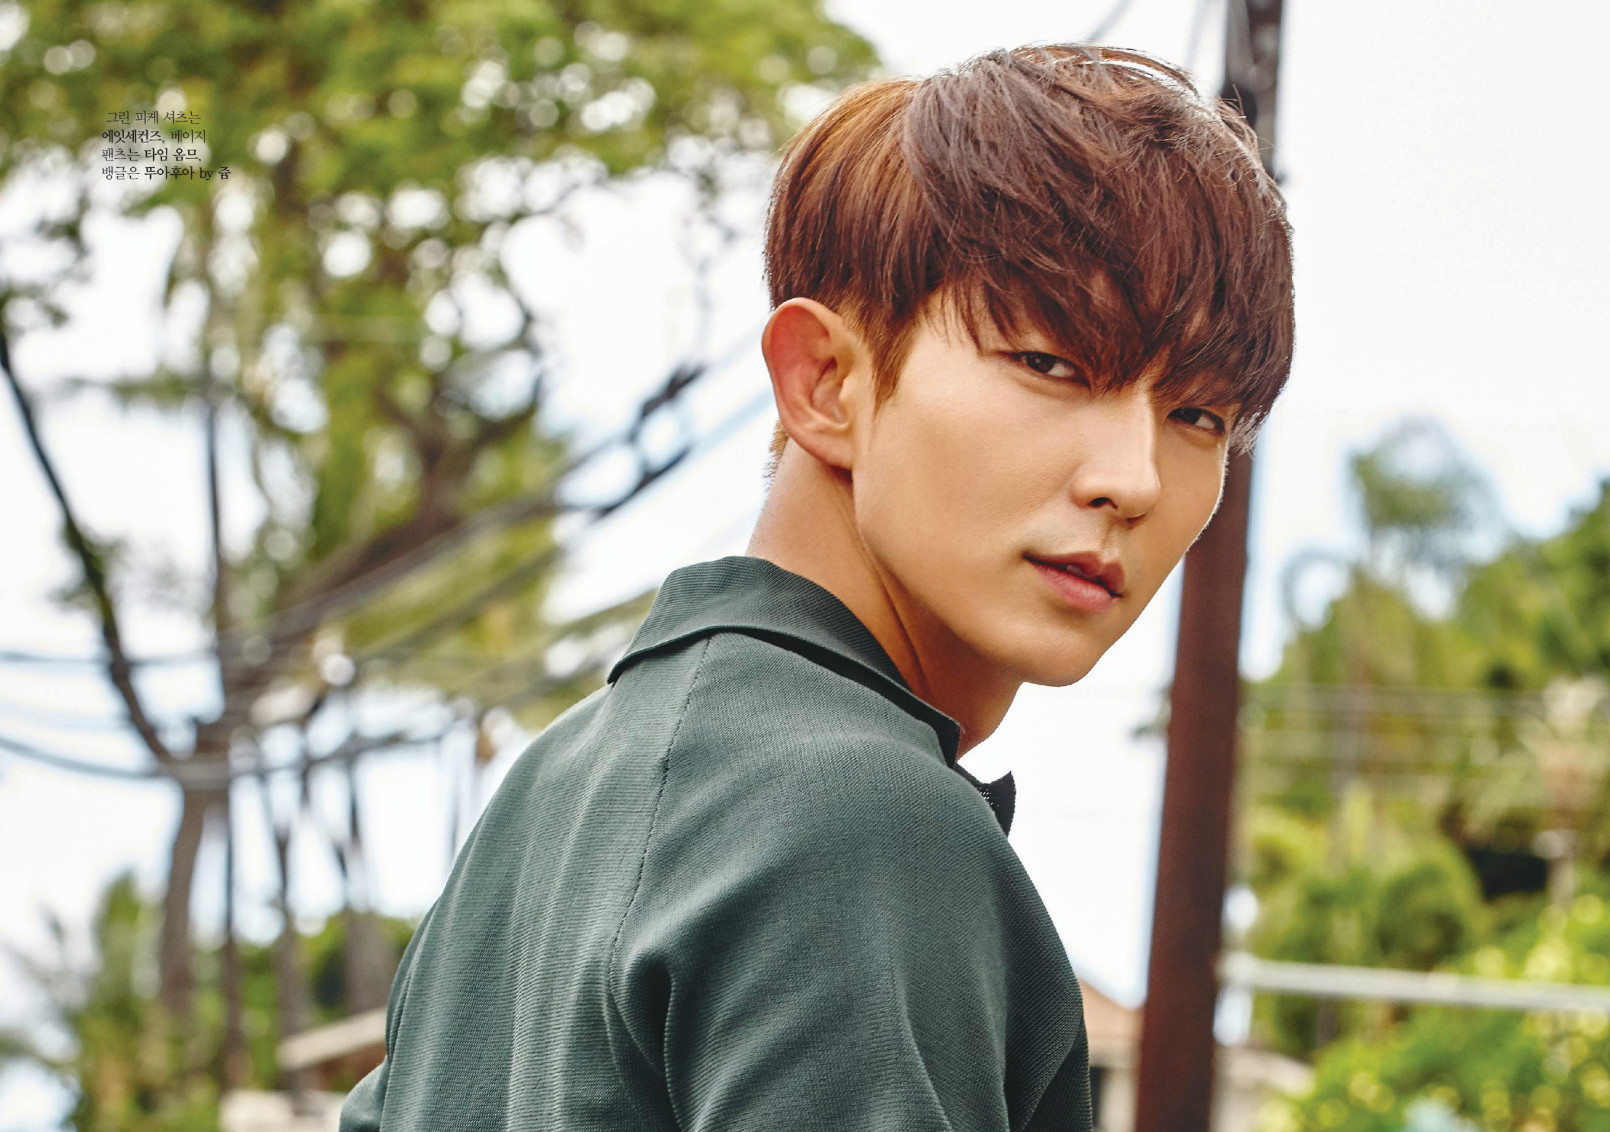 Lee Joon Gi Reveals He Wants To Be In A Romantic Comedy But He Never Gets Any Offers